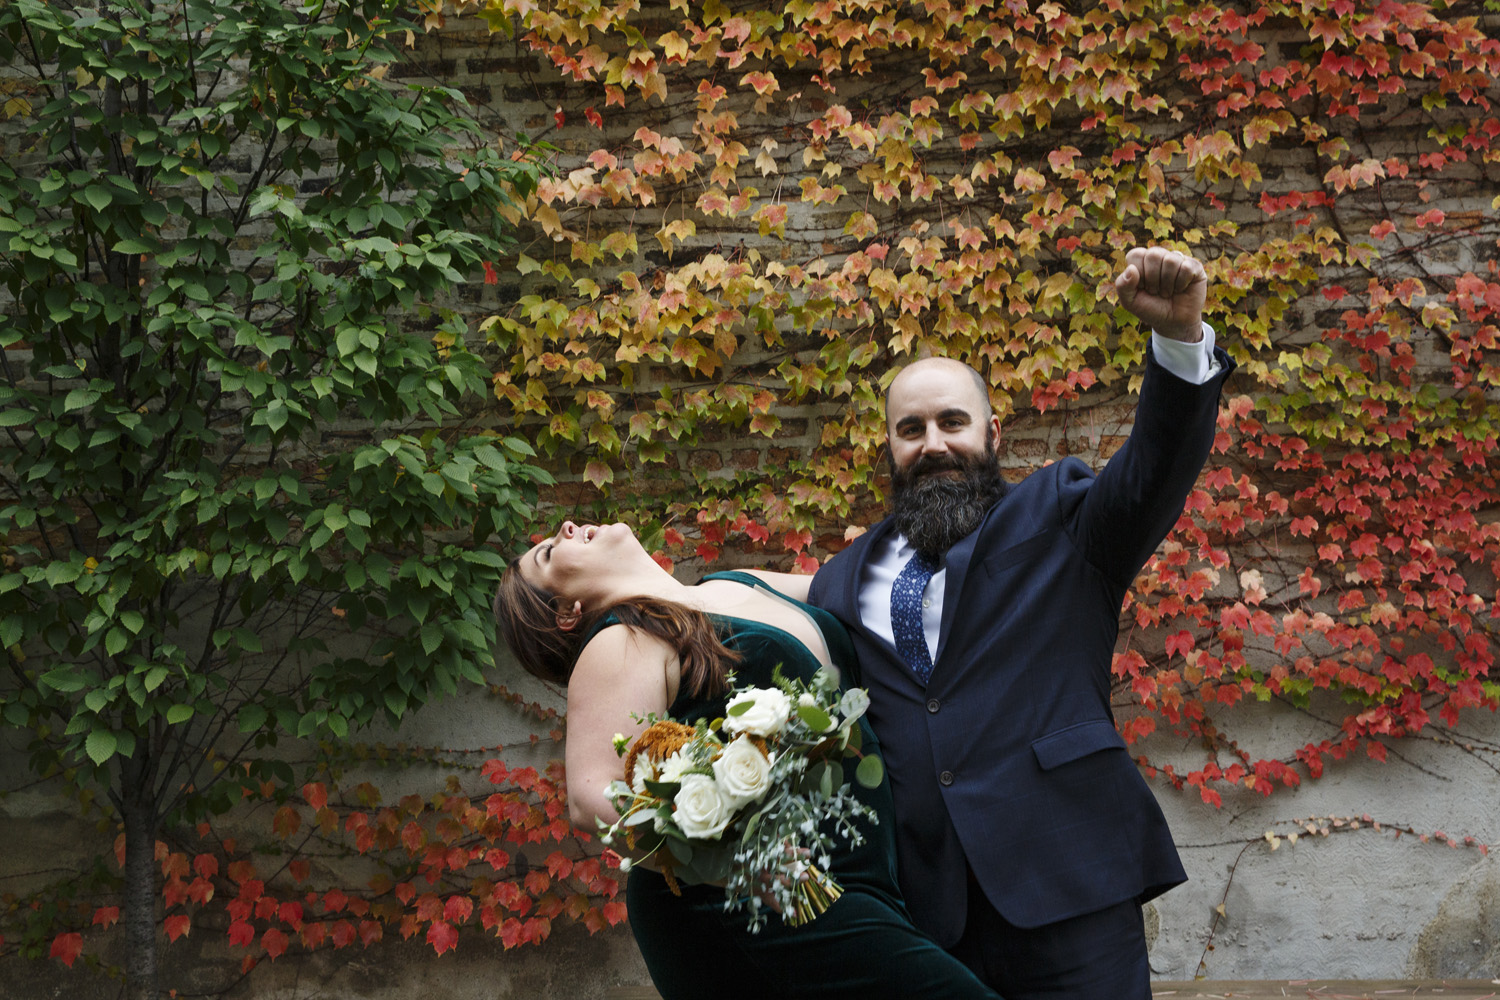 bride and groom embracing and celebrating just married fall leaves wedding